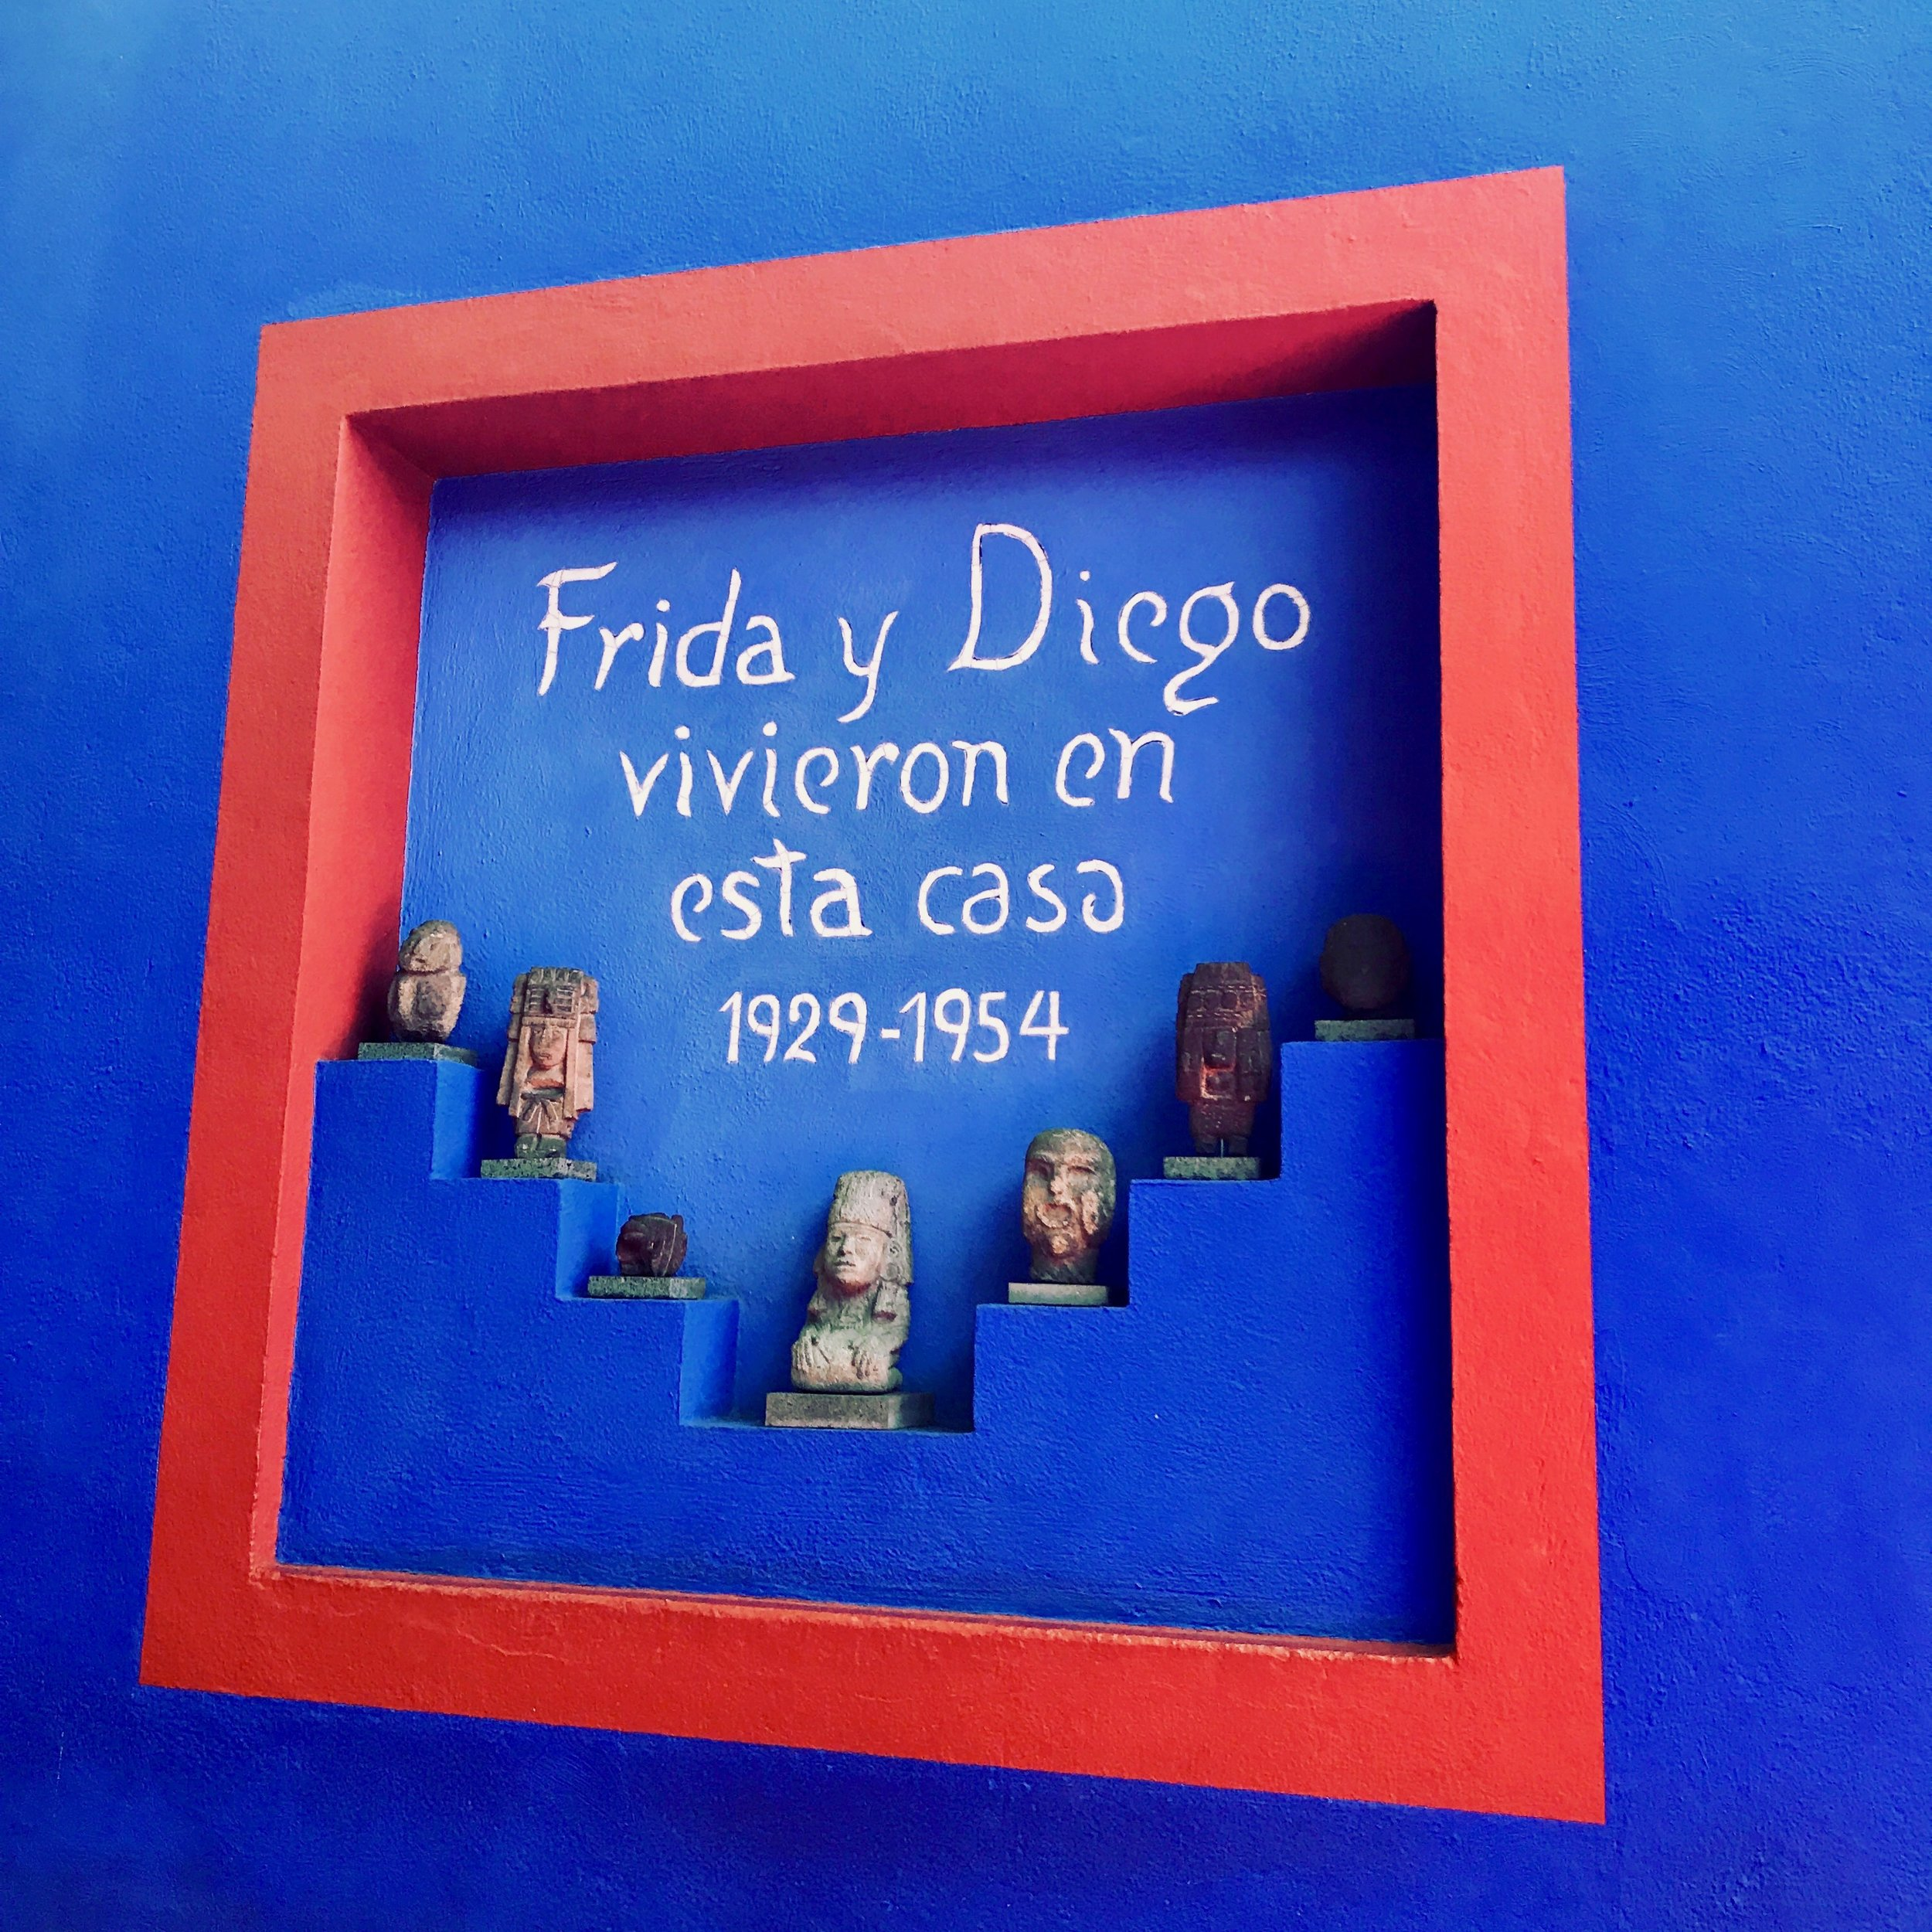 Frida Kahlo and Diego Rivera's house in Coyoacan